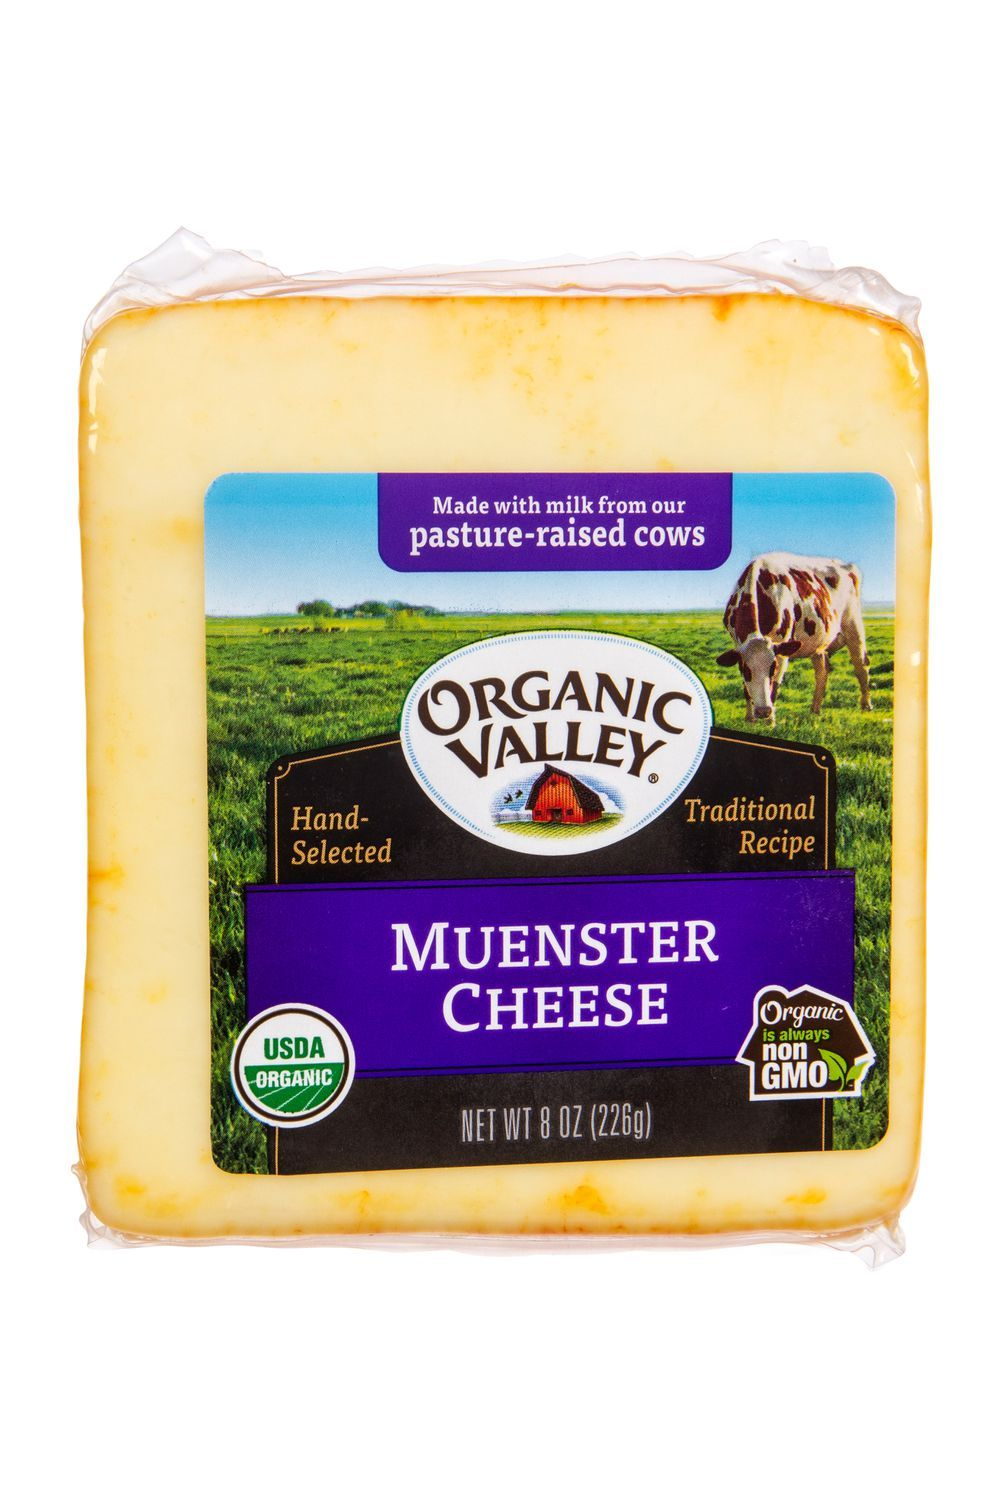 Organic Valley Muenster Cheese Organic In 2020 Organic Valley Muenster Cheese Organic Recipes